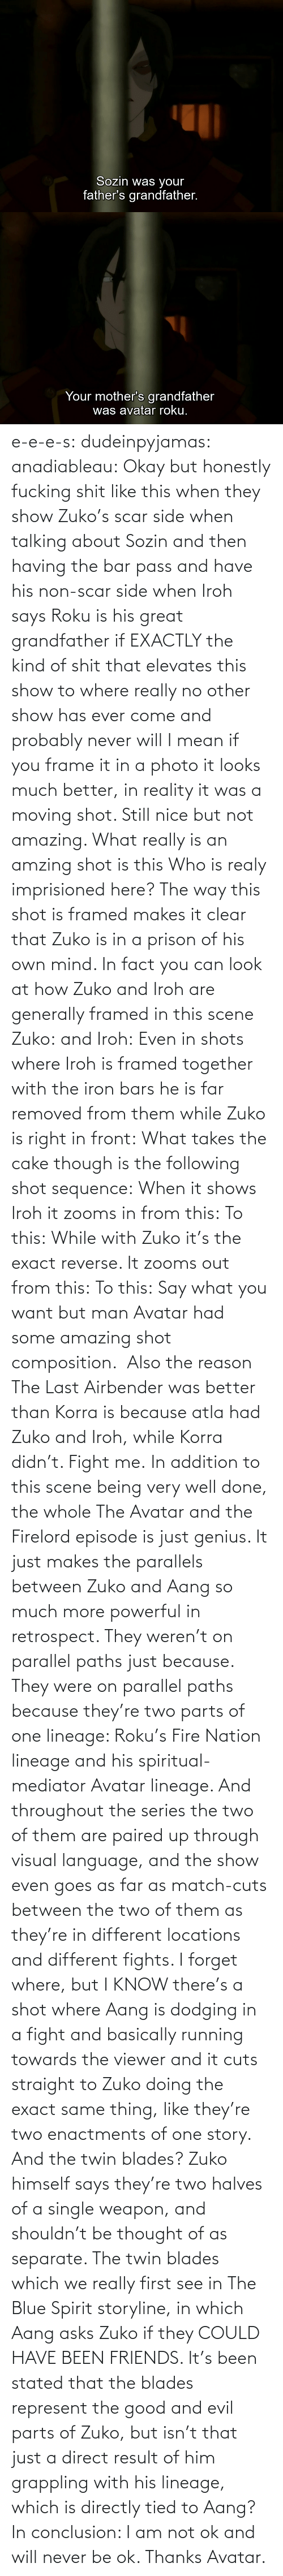 Am Not: e-e-e-s: dudeinpyjamas:   anadiableau: Okay but honestly fucking shit like this when they show Zuko's scar side when talking about Sozin and then having the bar pass and have his non-scar side when Iroh says Roku is his great grandfather if EXACTLY the kind of shit that elevates this show to where really no other show has ever come and probably never will I mean if you frame it in a photo it looks much better, in reality it was a moving shot. Still nice but not amazing. What really is an amzing shot is this Who is realy imprisioned here? The way this shot is framed makes it clear that Zuko is in a prison of his own mind. In fact you can look at how Zuko and Iroh are generally framed in this scene Zuko: and Iroh: Even in shots where Iroh is framed together with the iron bars he is far removed from them while Zuko is right in front:  What takes the cake though is the following shot sequence: When it shows Iroh it zooms in from this: To this: While with Zuko it's the exact reverse. It zooms out from this: To this: Say what you want but man Avatar had some amazing shot composition.   Also the reason The Last Airbender was better than Korra is because atla had Zuko and Iroh, while Korra didn't. Fight me.    In addition to this scene being very well done, the whole The Avatar and the Firelord episode is just genius.  It just makes the parallels between Zuko and Aang so much more powerful in retrospect.  They weren't on parallel paths just because.  They were on parallel paths because they're two parts of one lineage: Roku's Fire Nation lineage and his spiritual-mediator Avatar lineage.  And throughout the series the two of them are paired up through visual language, and the show even goes as far as match-cuts between the two of them as they're in different locations and different fights.  I forget where, but I KNOW there's a shot where Aang is dodging in a fight and basically running towards the viewer and it cuts straight to Zuko doing the exact same thing, like they're two enactments of one story.   And the twin blades?  Zuko himself says they're two halves of a single weapon, and shouldn't be thought of as separate.  The twin blades which we really first see in The Blue Spirit storyline, in which Aang asks Zuko if they COULD HAVE BEEN FRIENDS.  It's been stated that the blades represent the good and evil parts of Zuko, but isn't that just a direct result of him grappling with his lineage, which is directly tied to Aang? In conclusion: I am not ok and will never be ok.  Thanks Avatar.